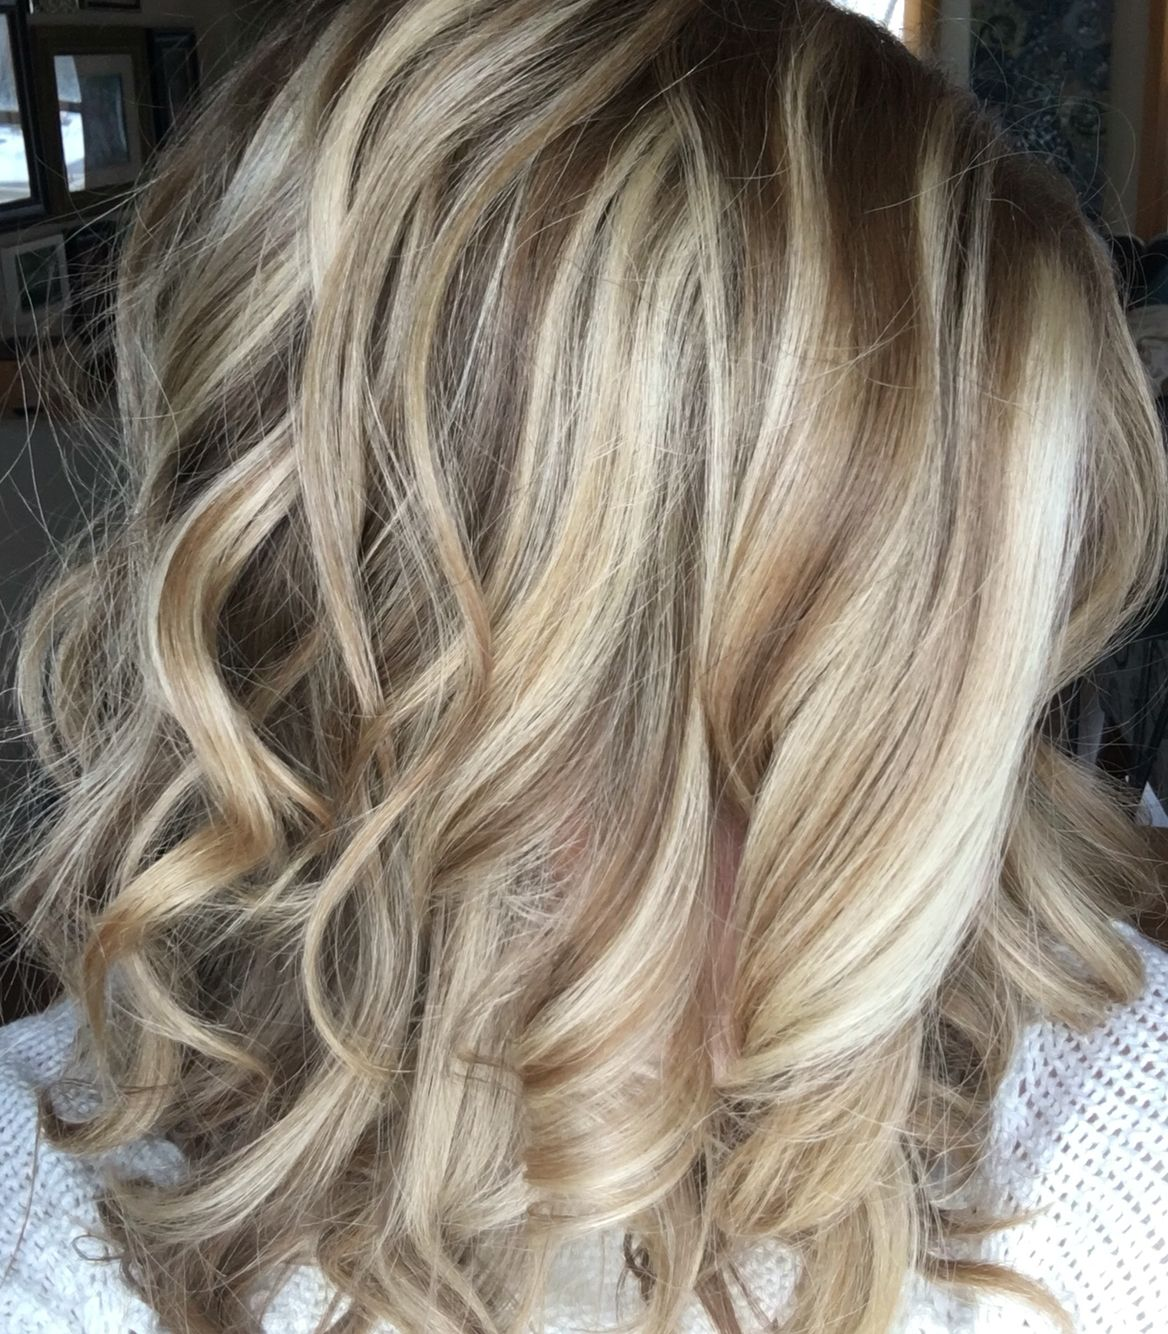 Today S Hair Colour Appointment Keep For Future Reference Hair Styles Hair Hair Hacks